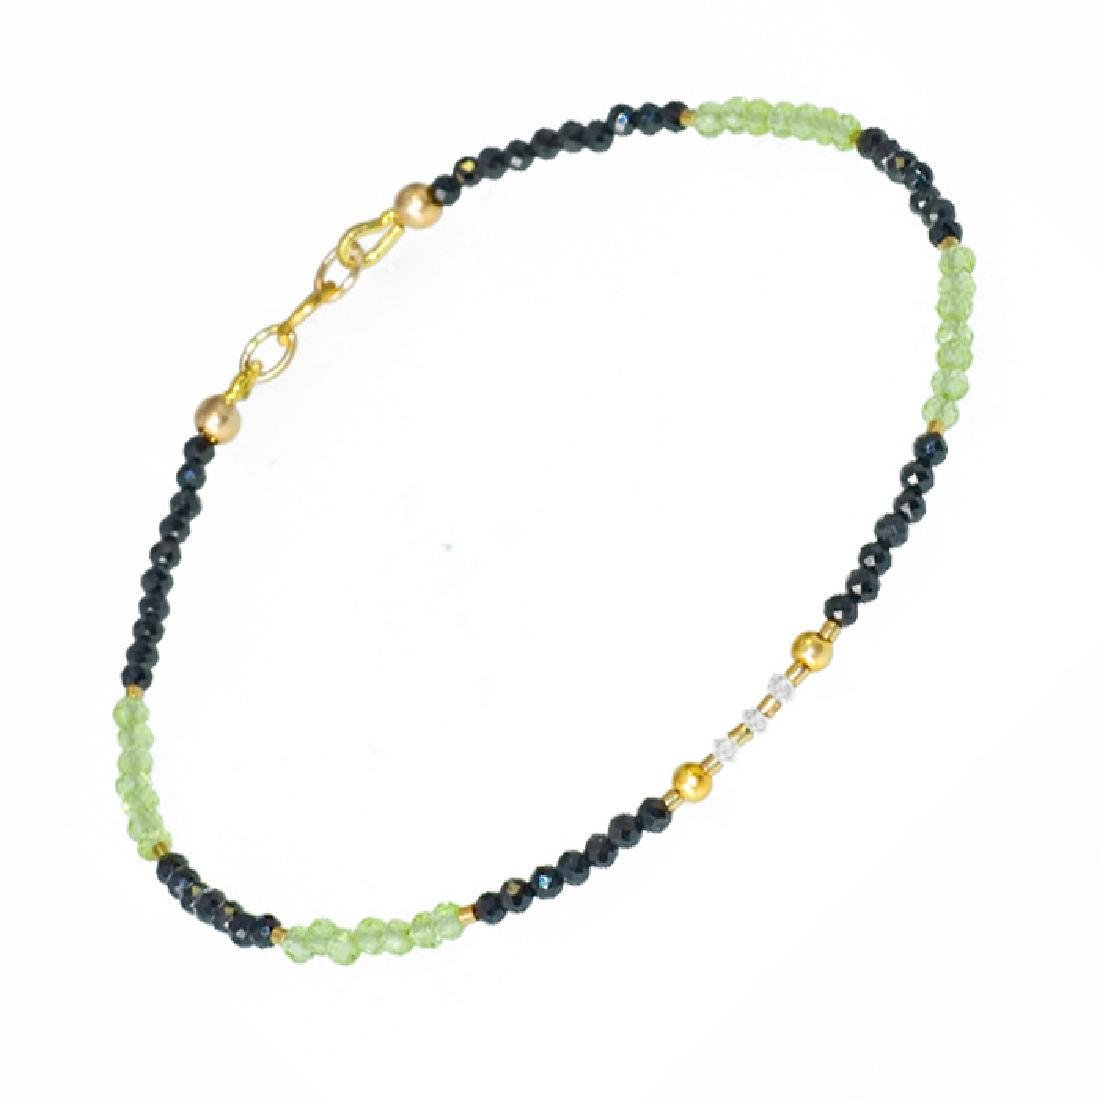 Spinel and Peridot bracelet with Diamonds 0.2 carat - 5